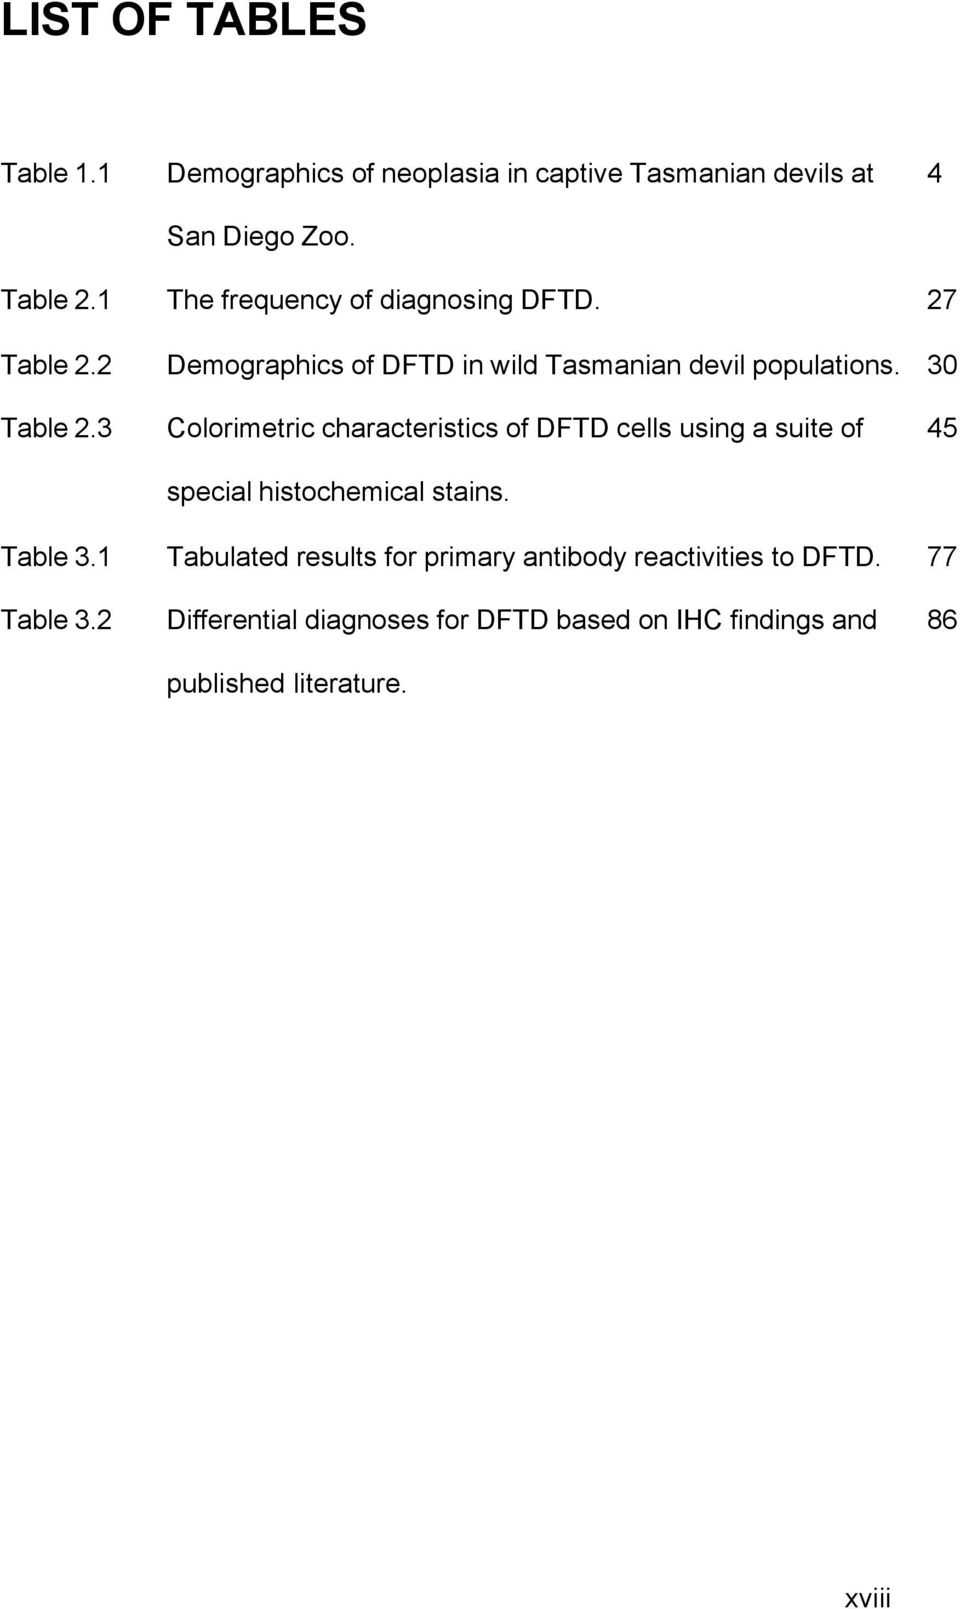 3 Colorimetric characteristics of DFTD cells using a suite of special histochemical stains. 45 Table 3.